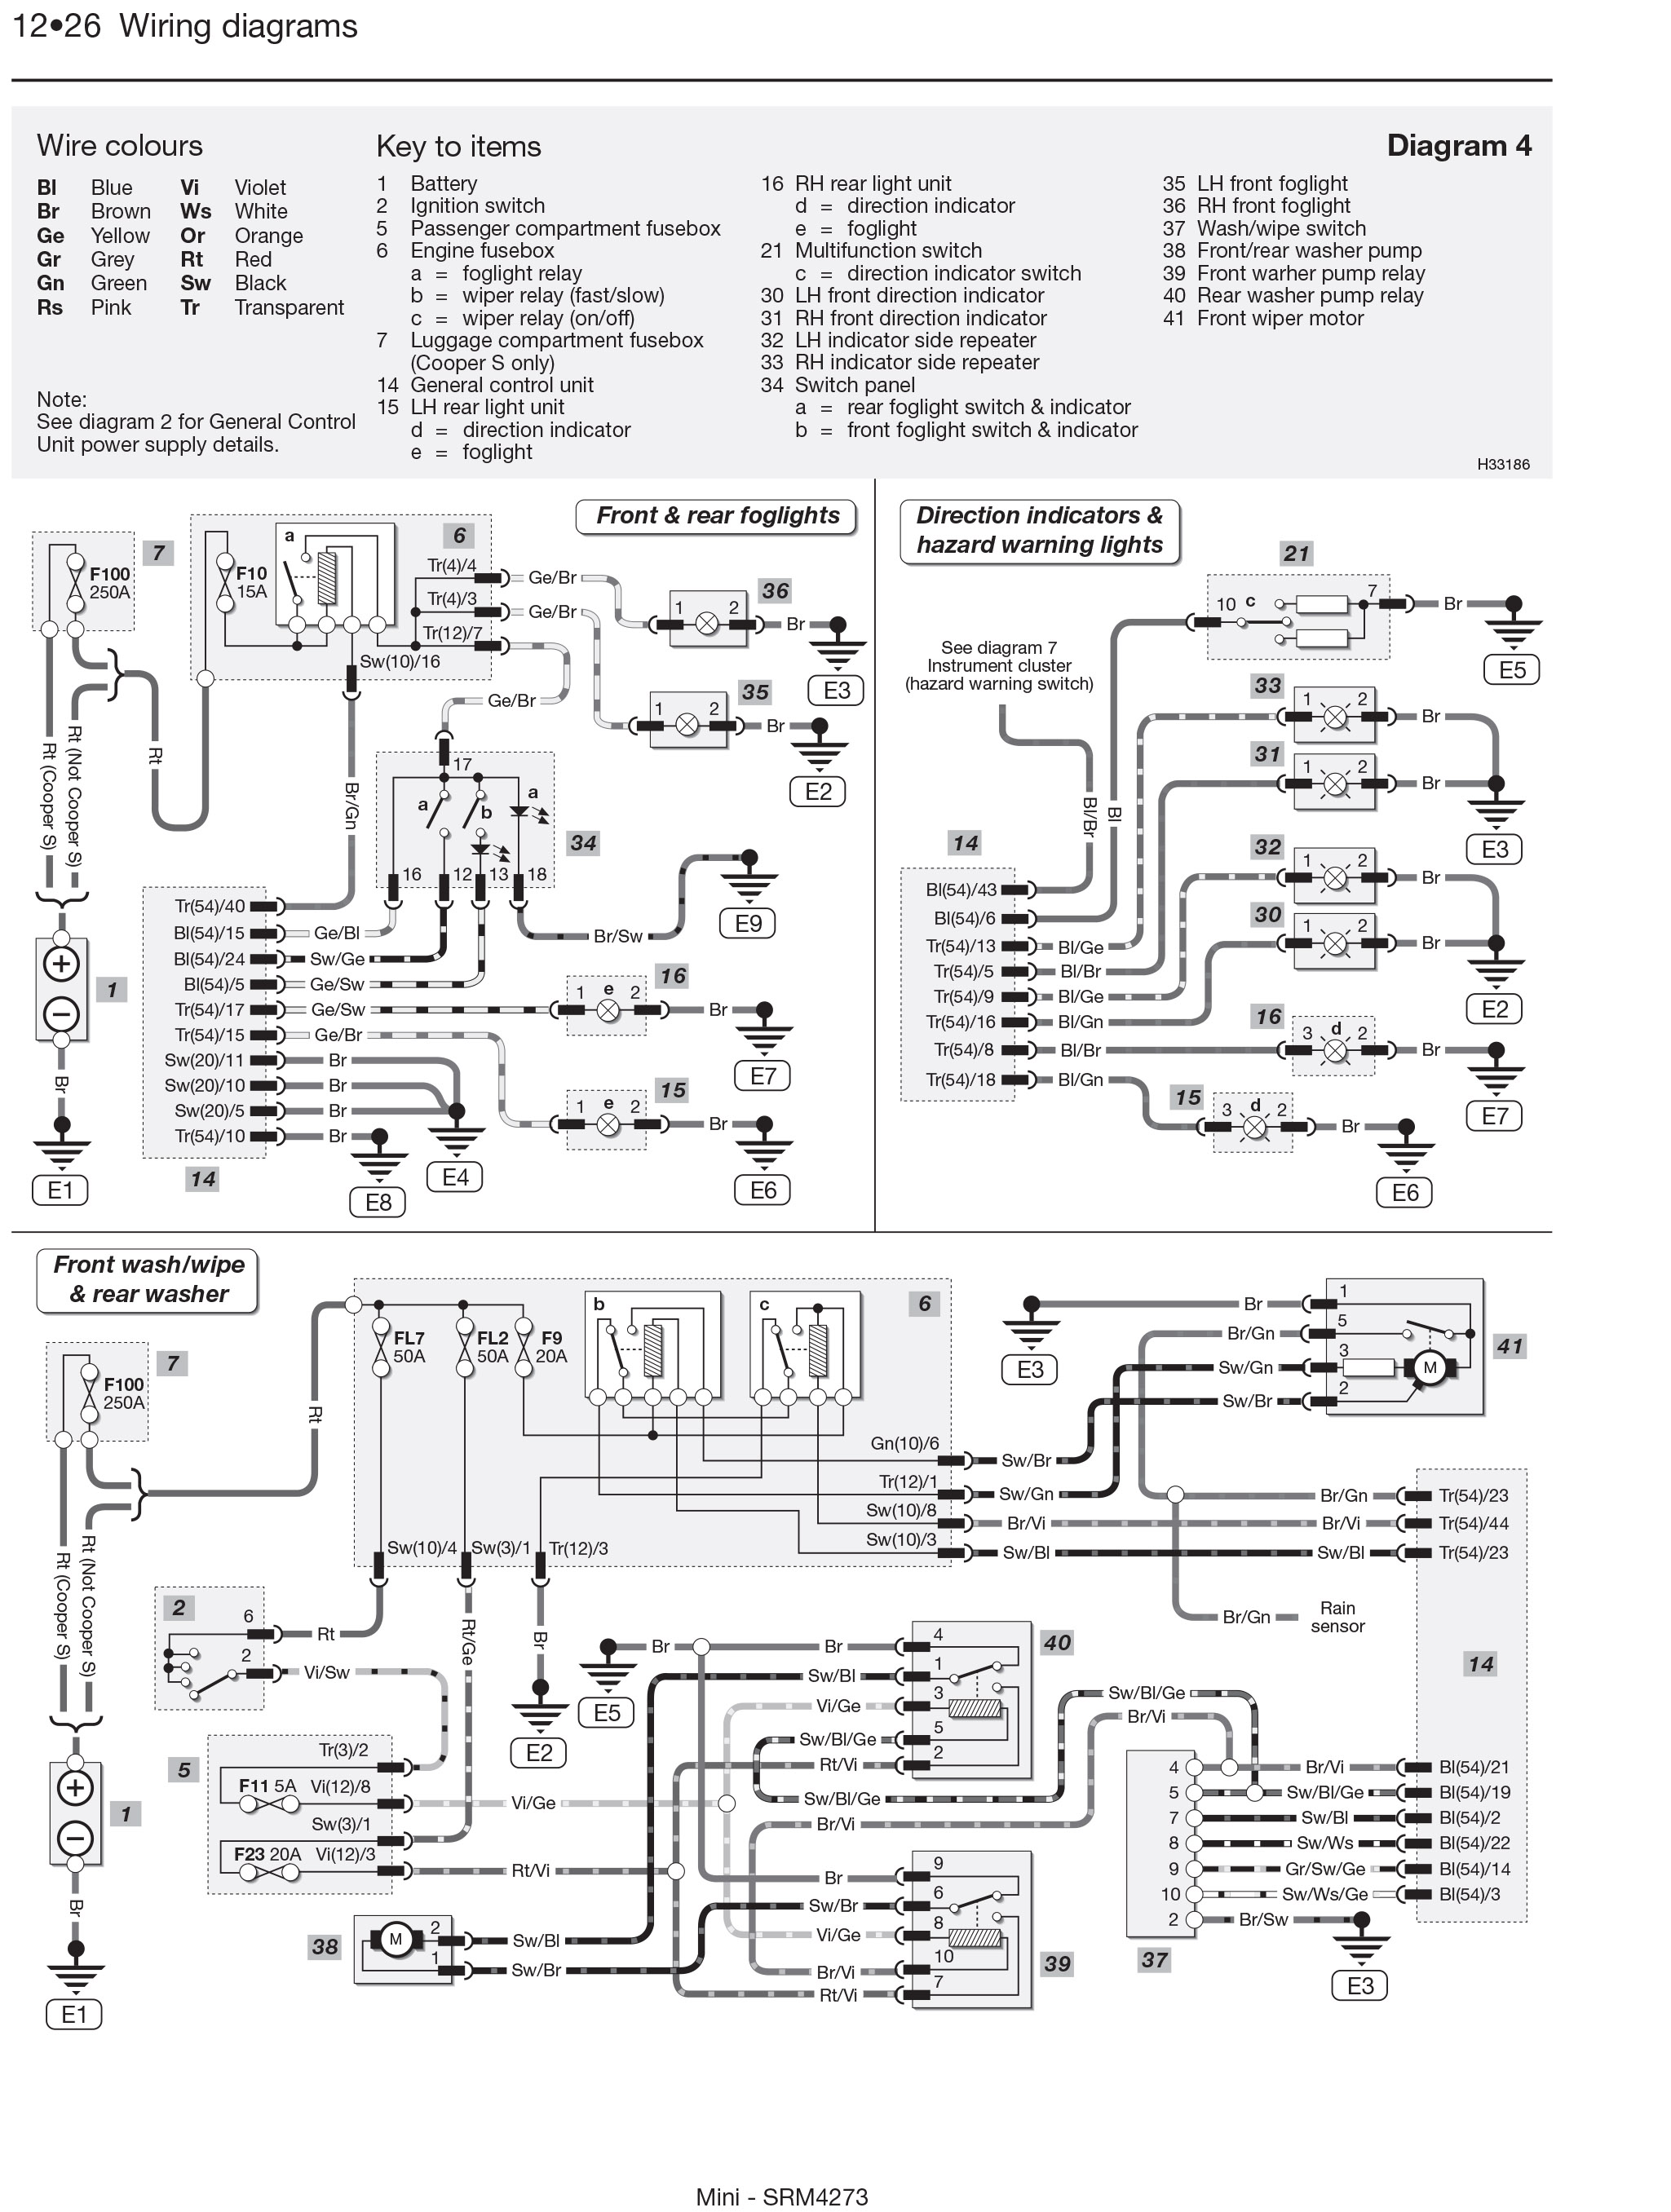 wiring diagram of 1977 1978 mini special wiring diagram 1978 Dodge D100 1978 Dodge D200 4x4